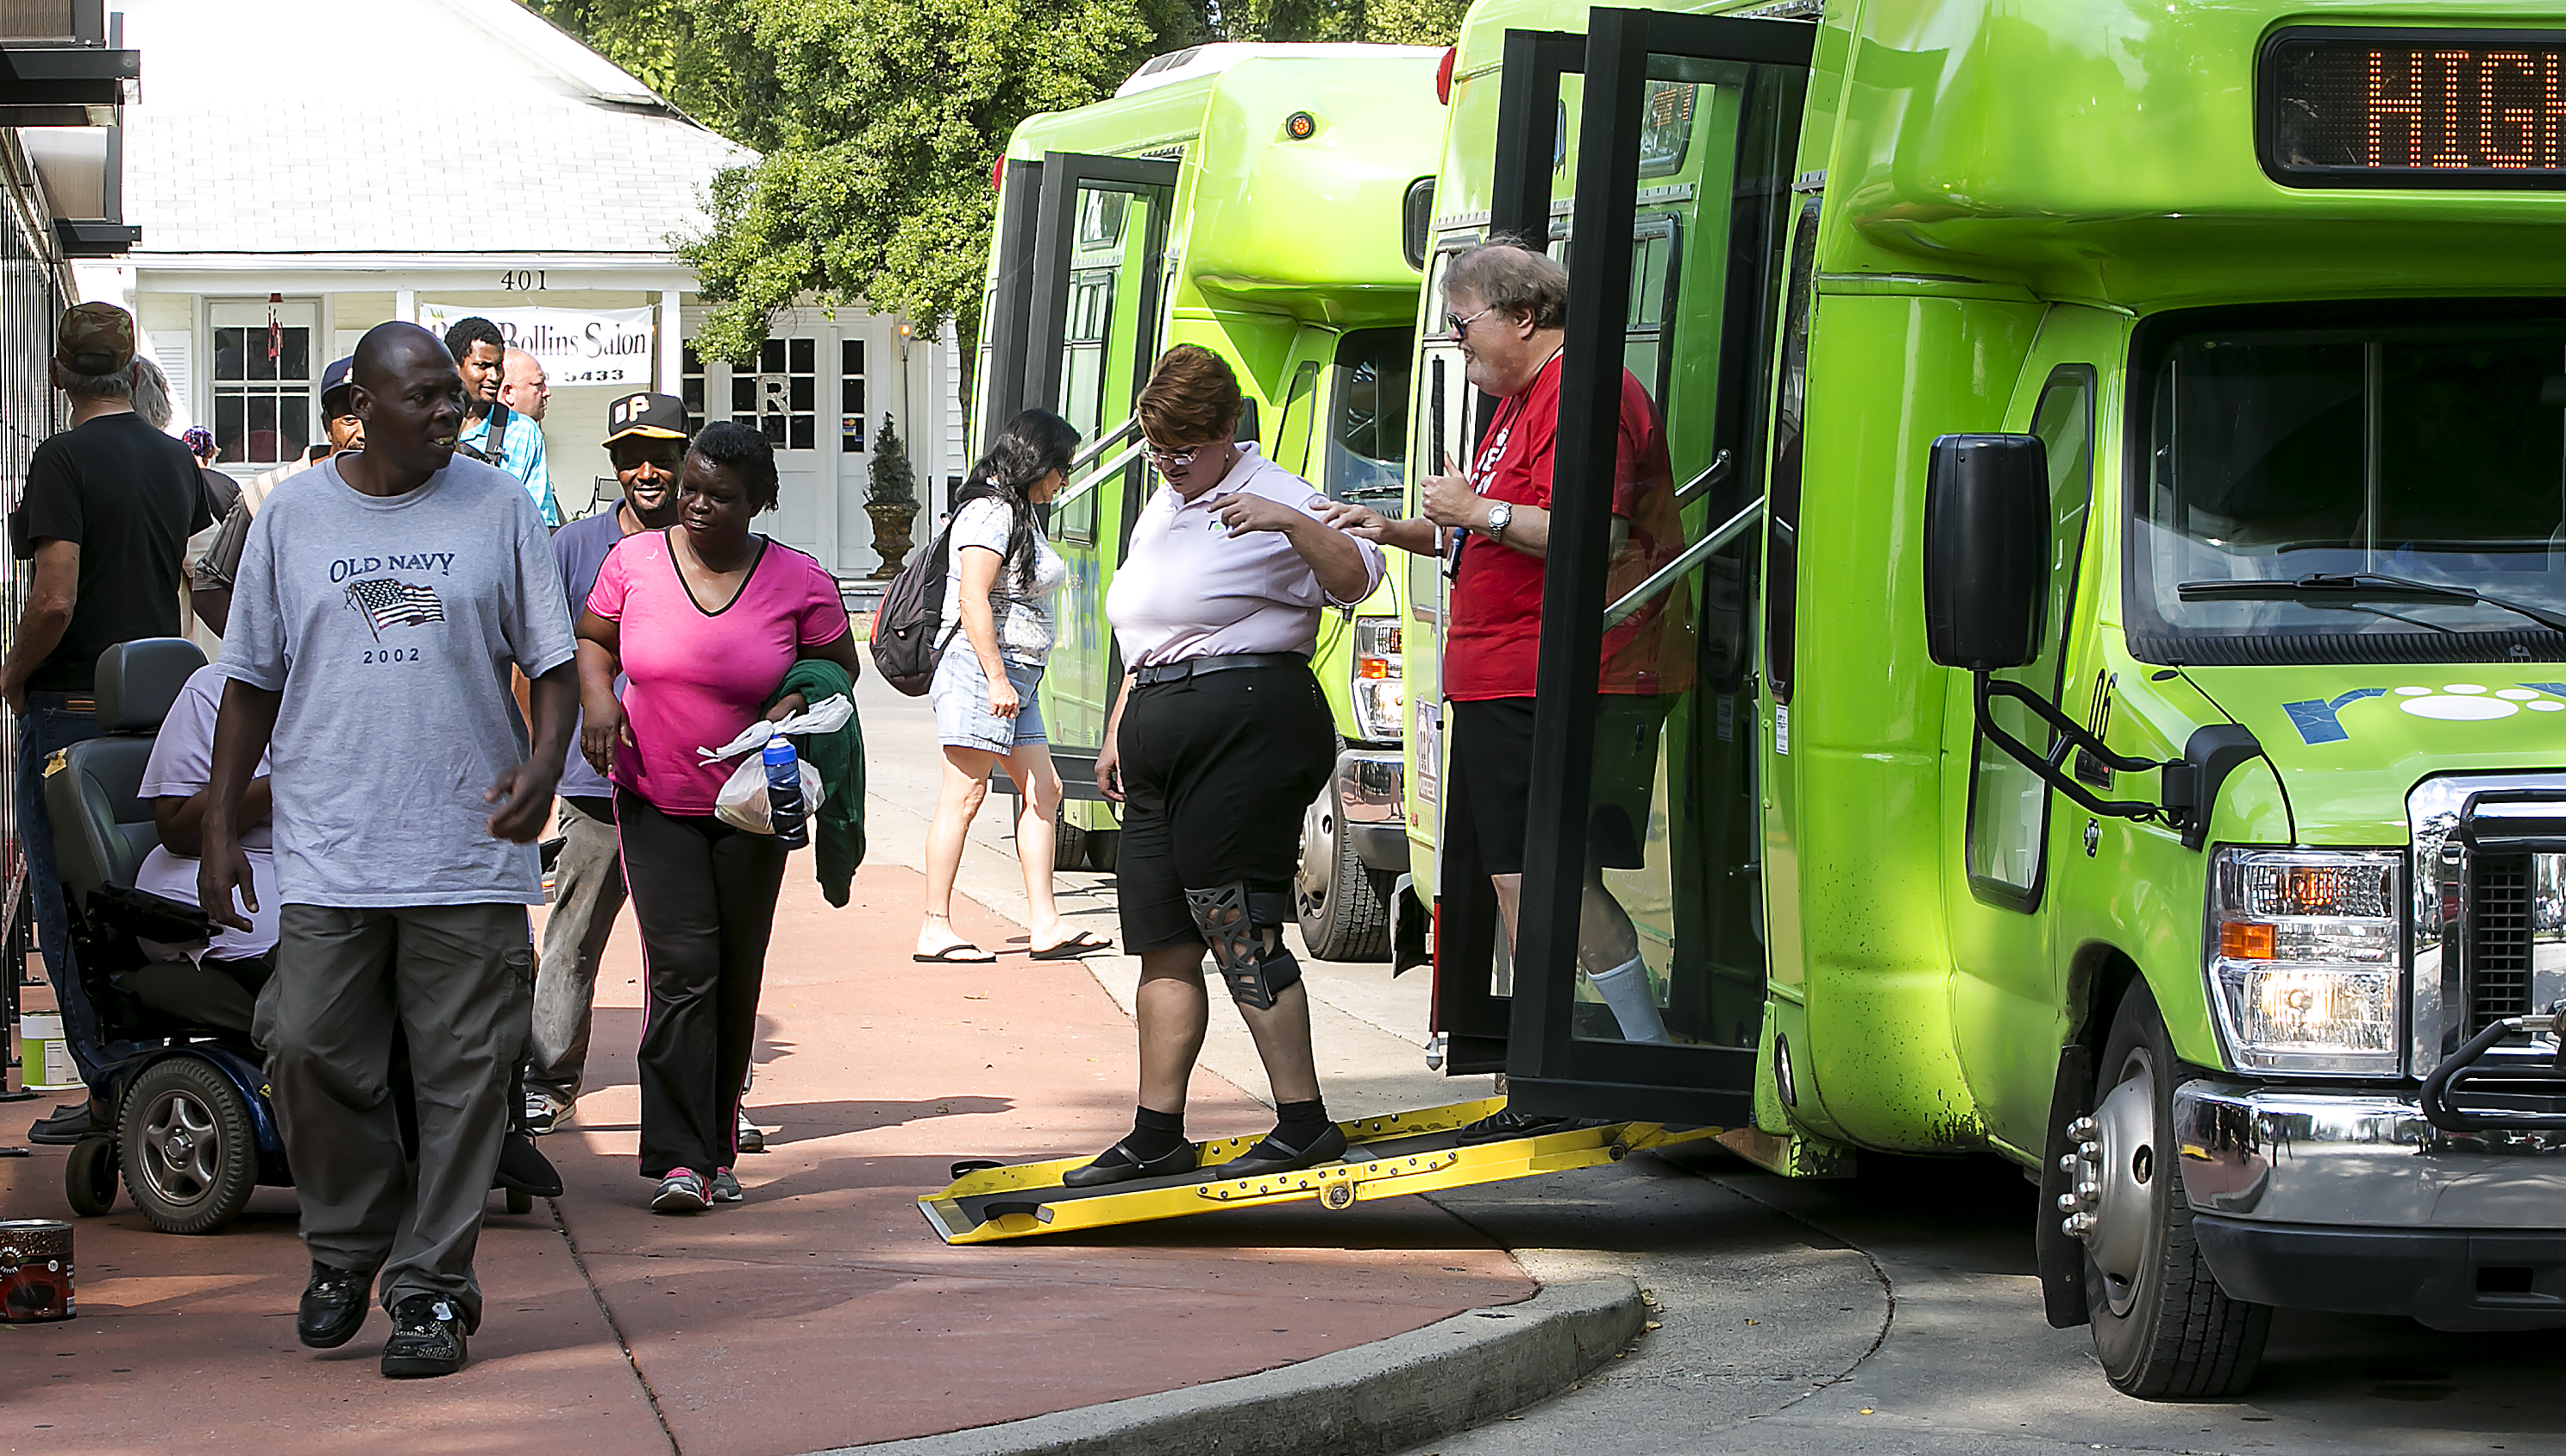 Rover public transportation seeks input to enhance system